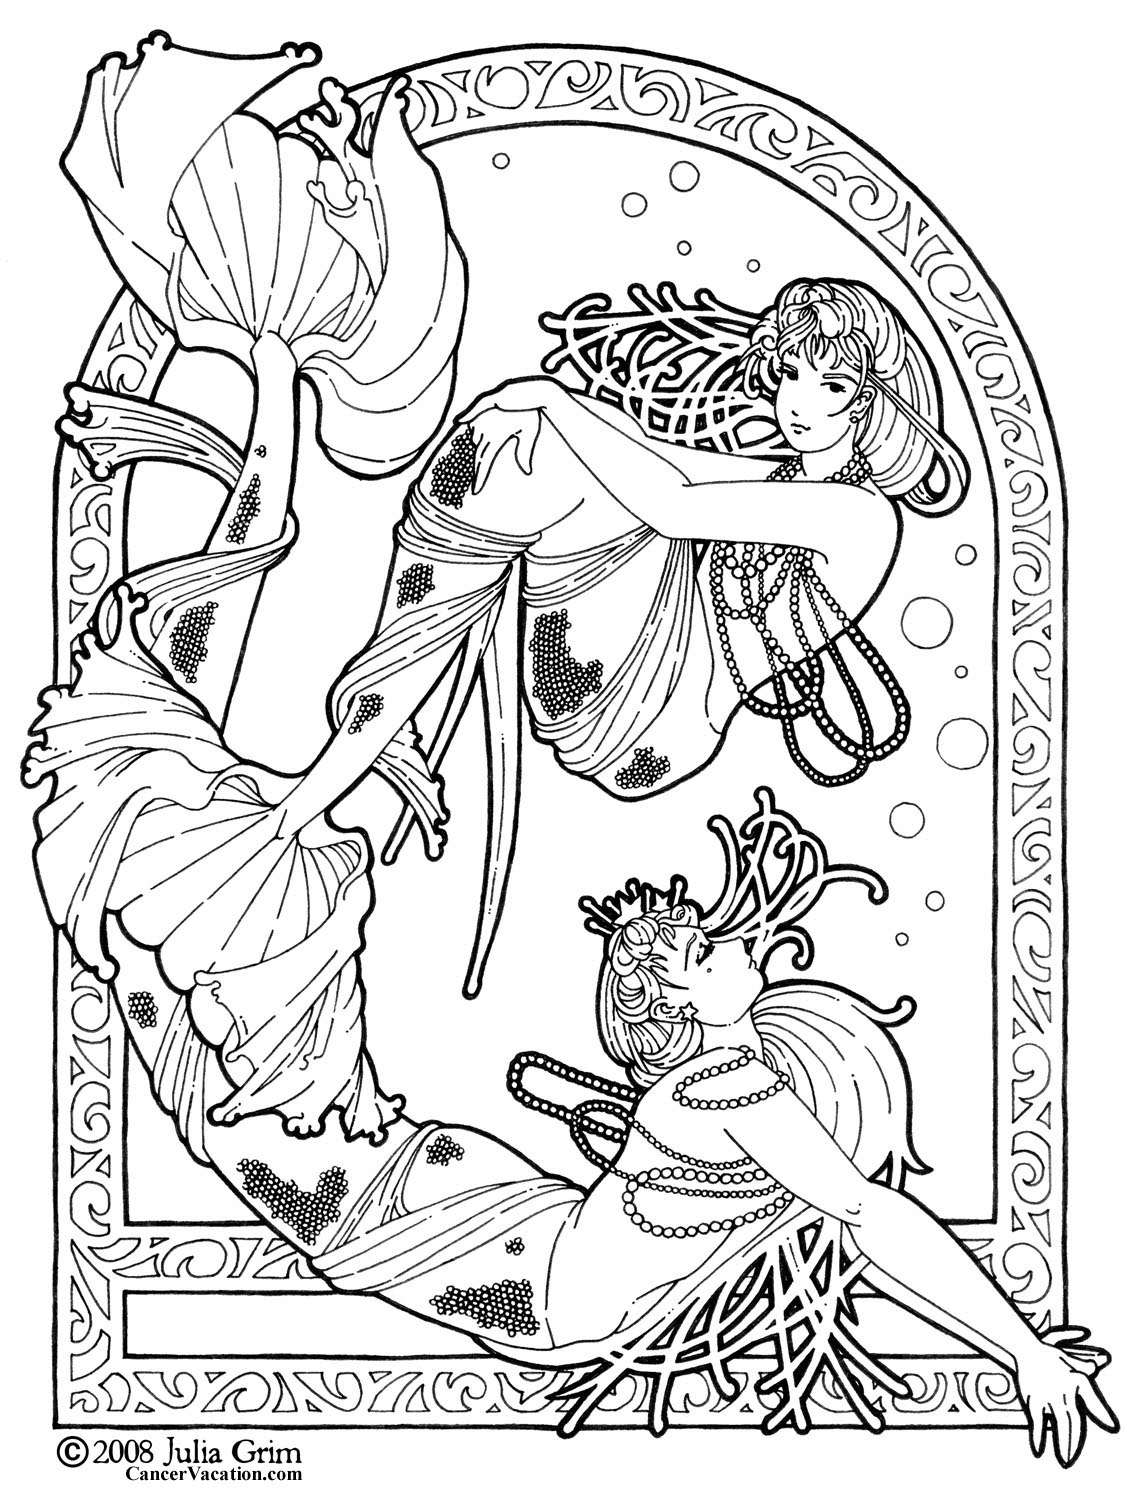 free printable coloring pages for adults full size coloring pages for adults at getcoloringscom pages coloring printable for free adults